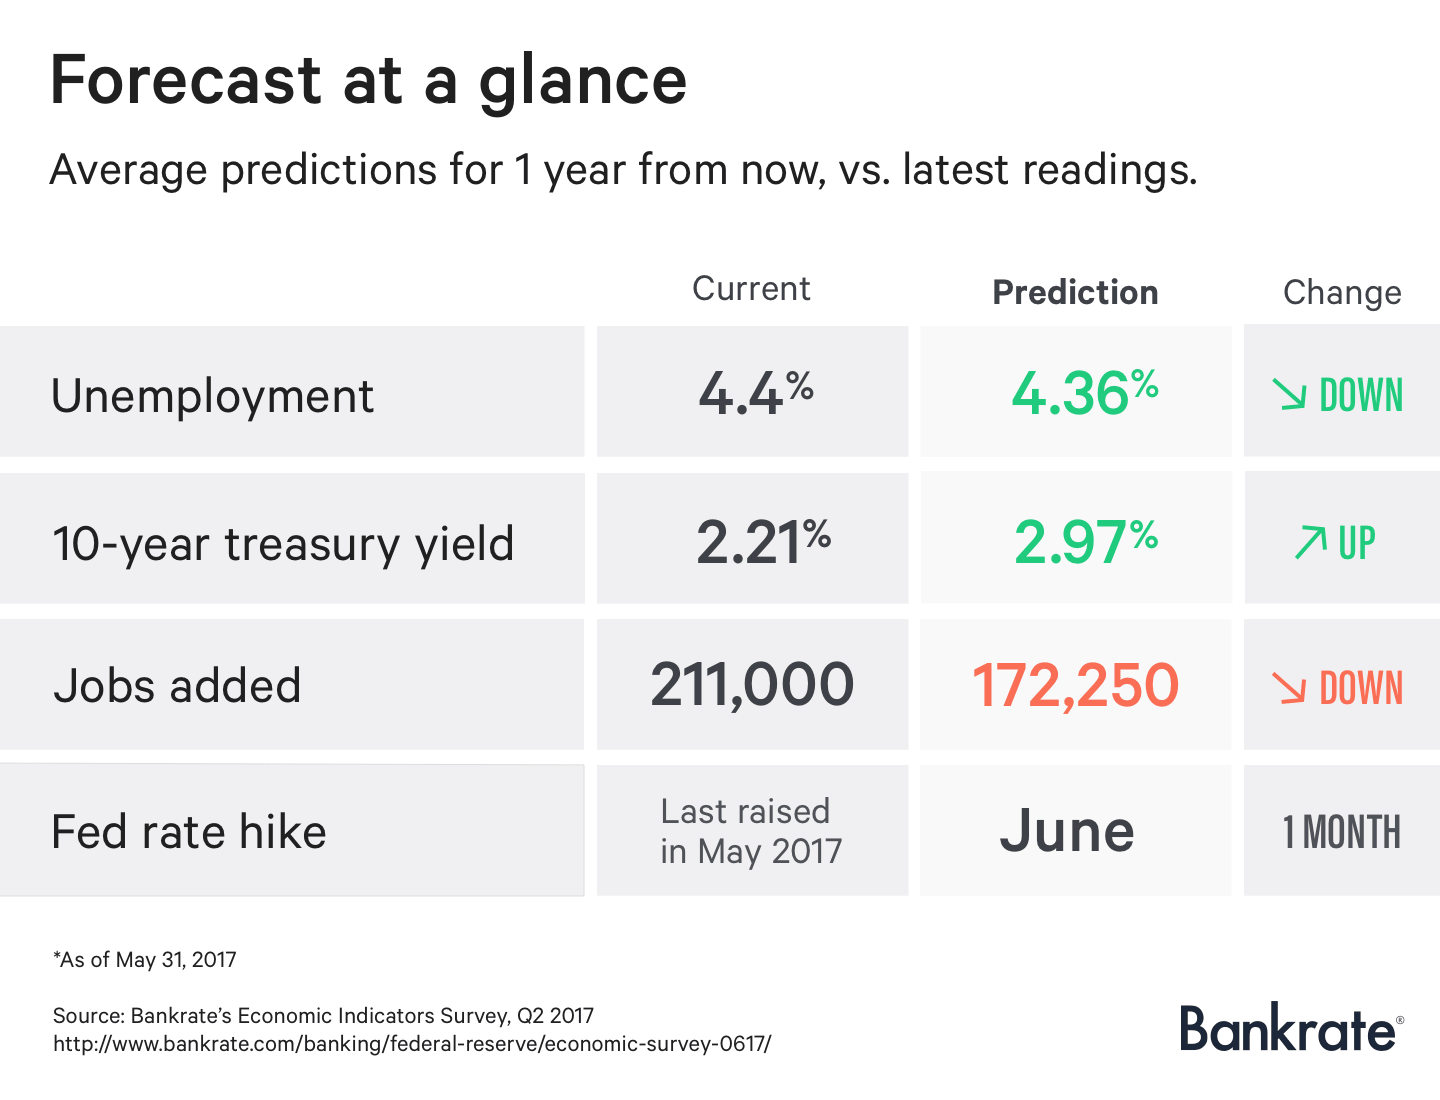 Economic forecast at a glance: Q2 2017